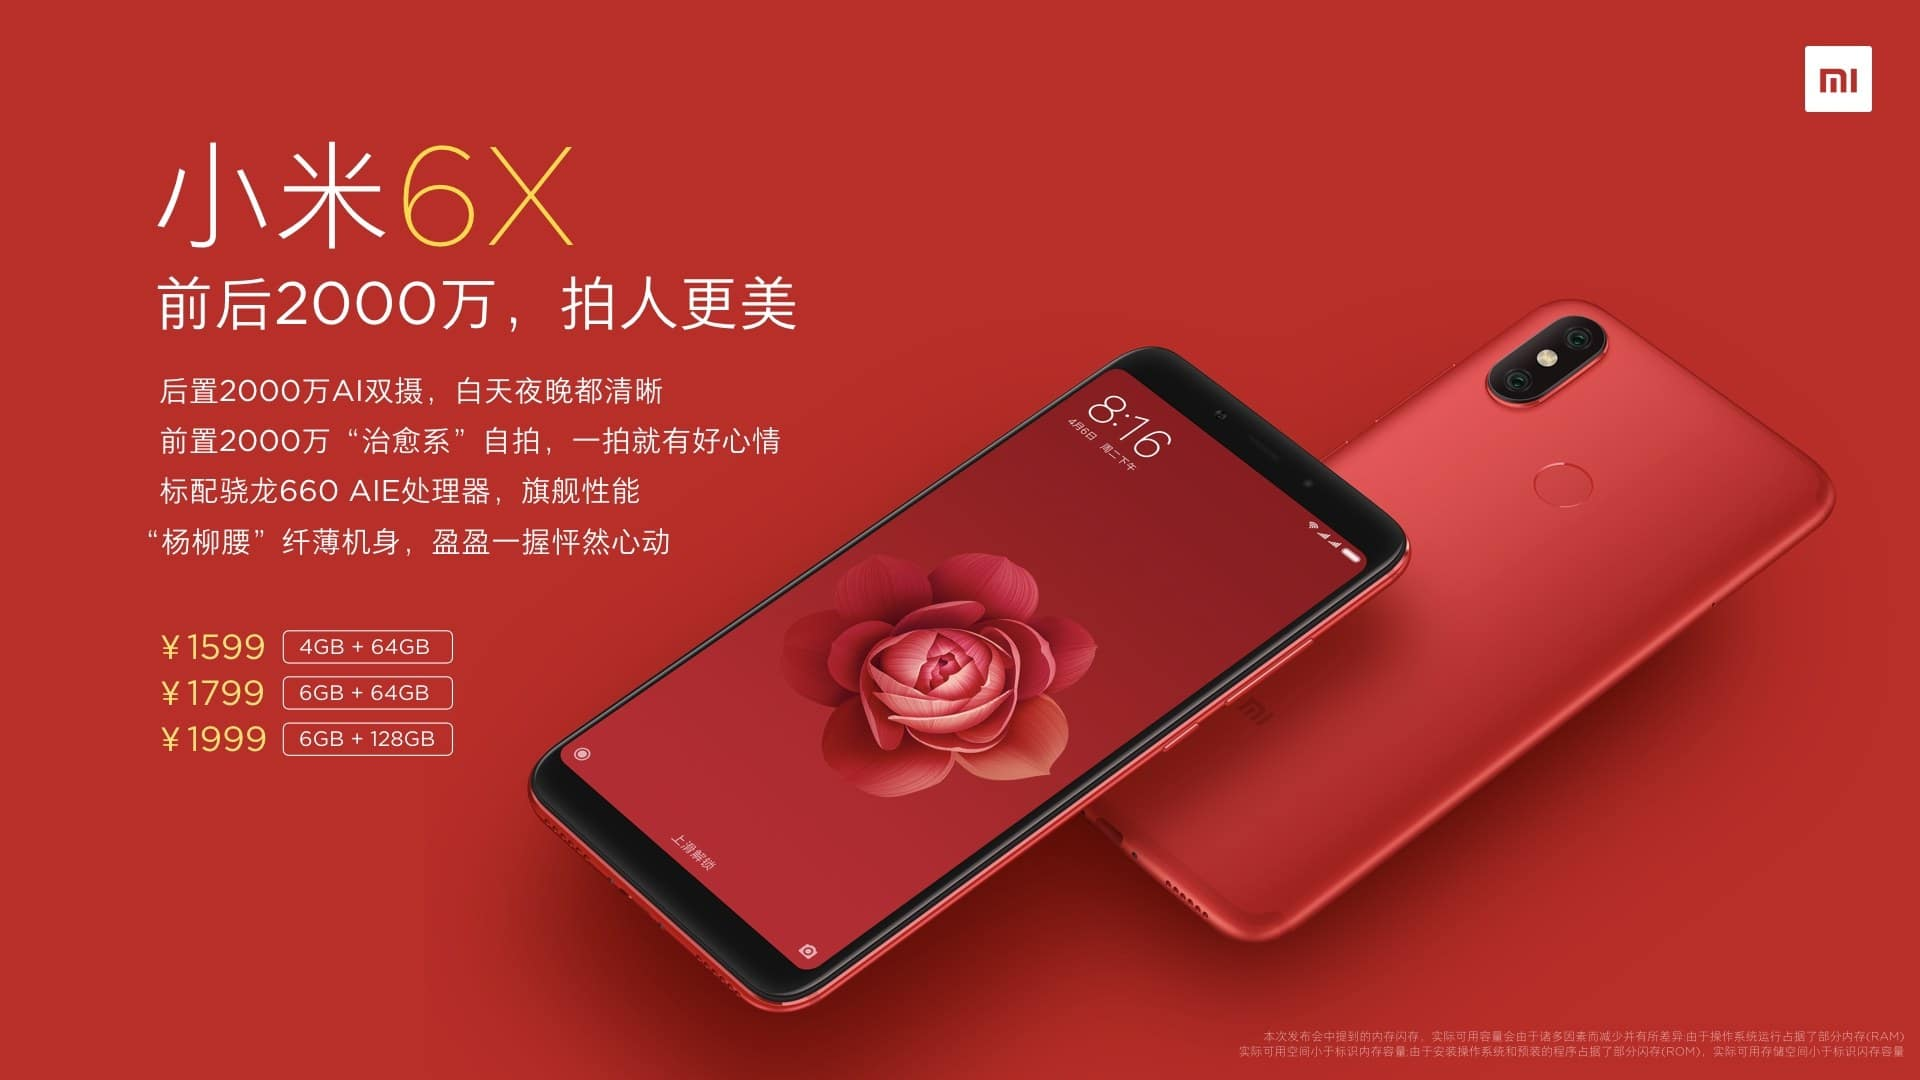 Xiaomi Announced The Mi 6X In China With Snapdragon 660, 12MP+20MP Rear Cameras, 20MP Selfie Camera And More